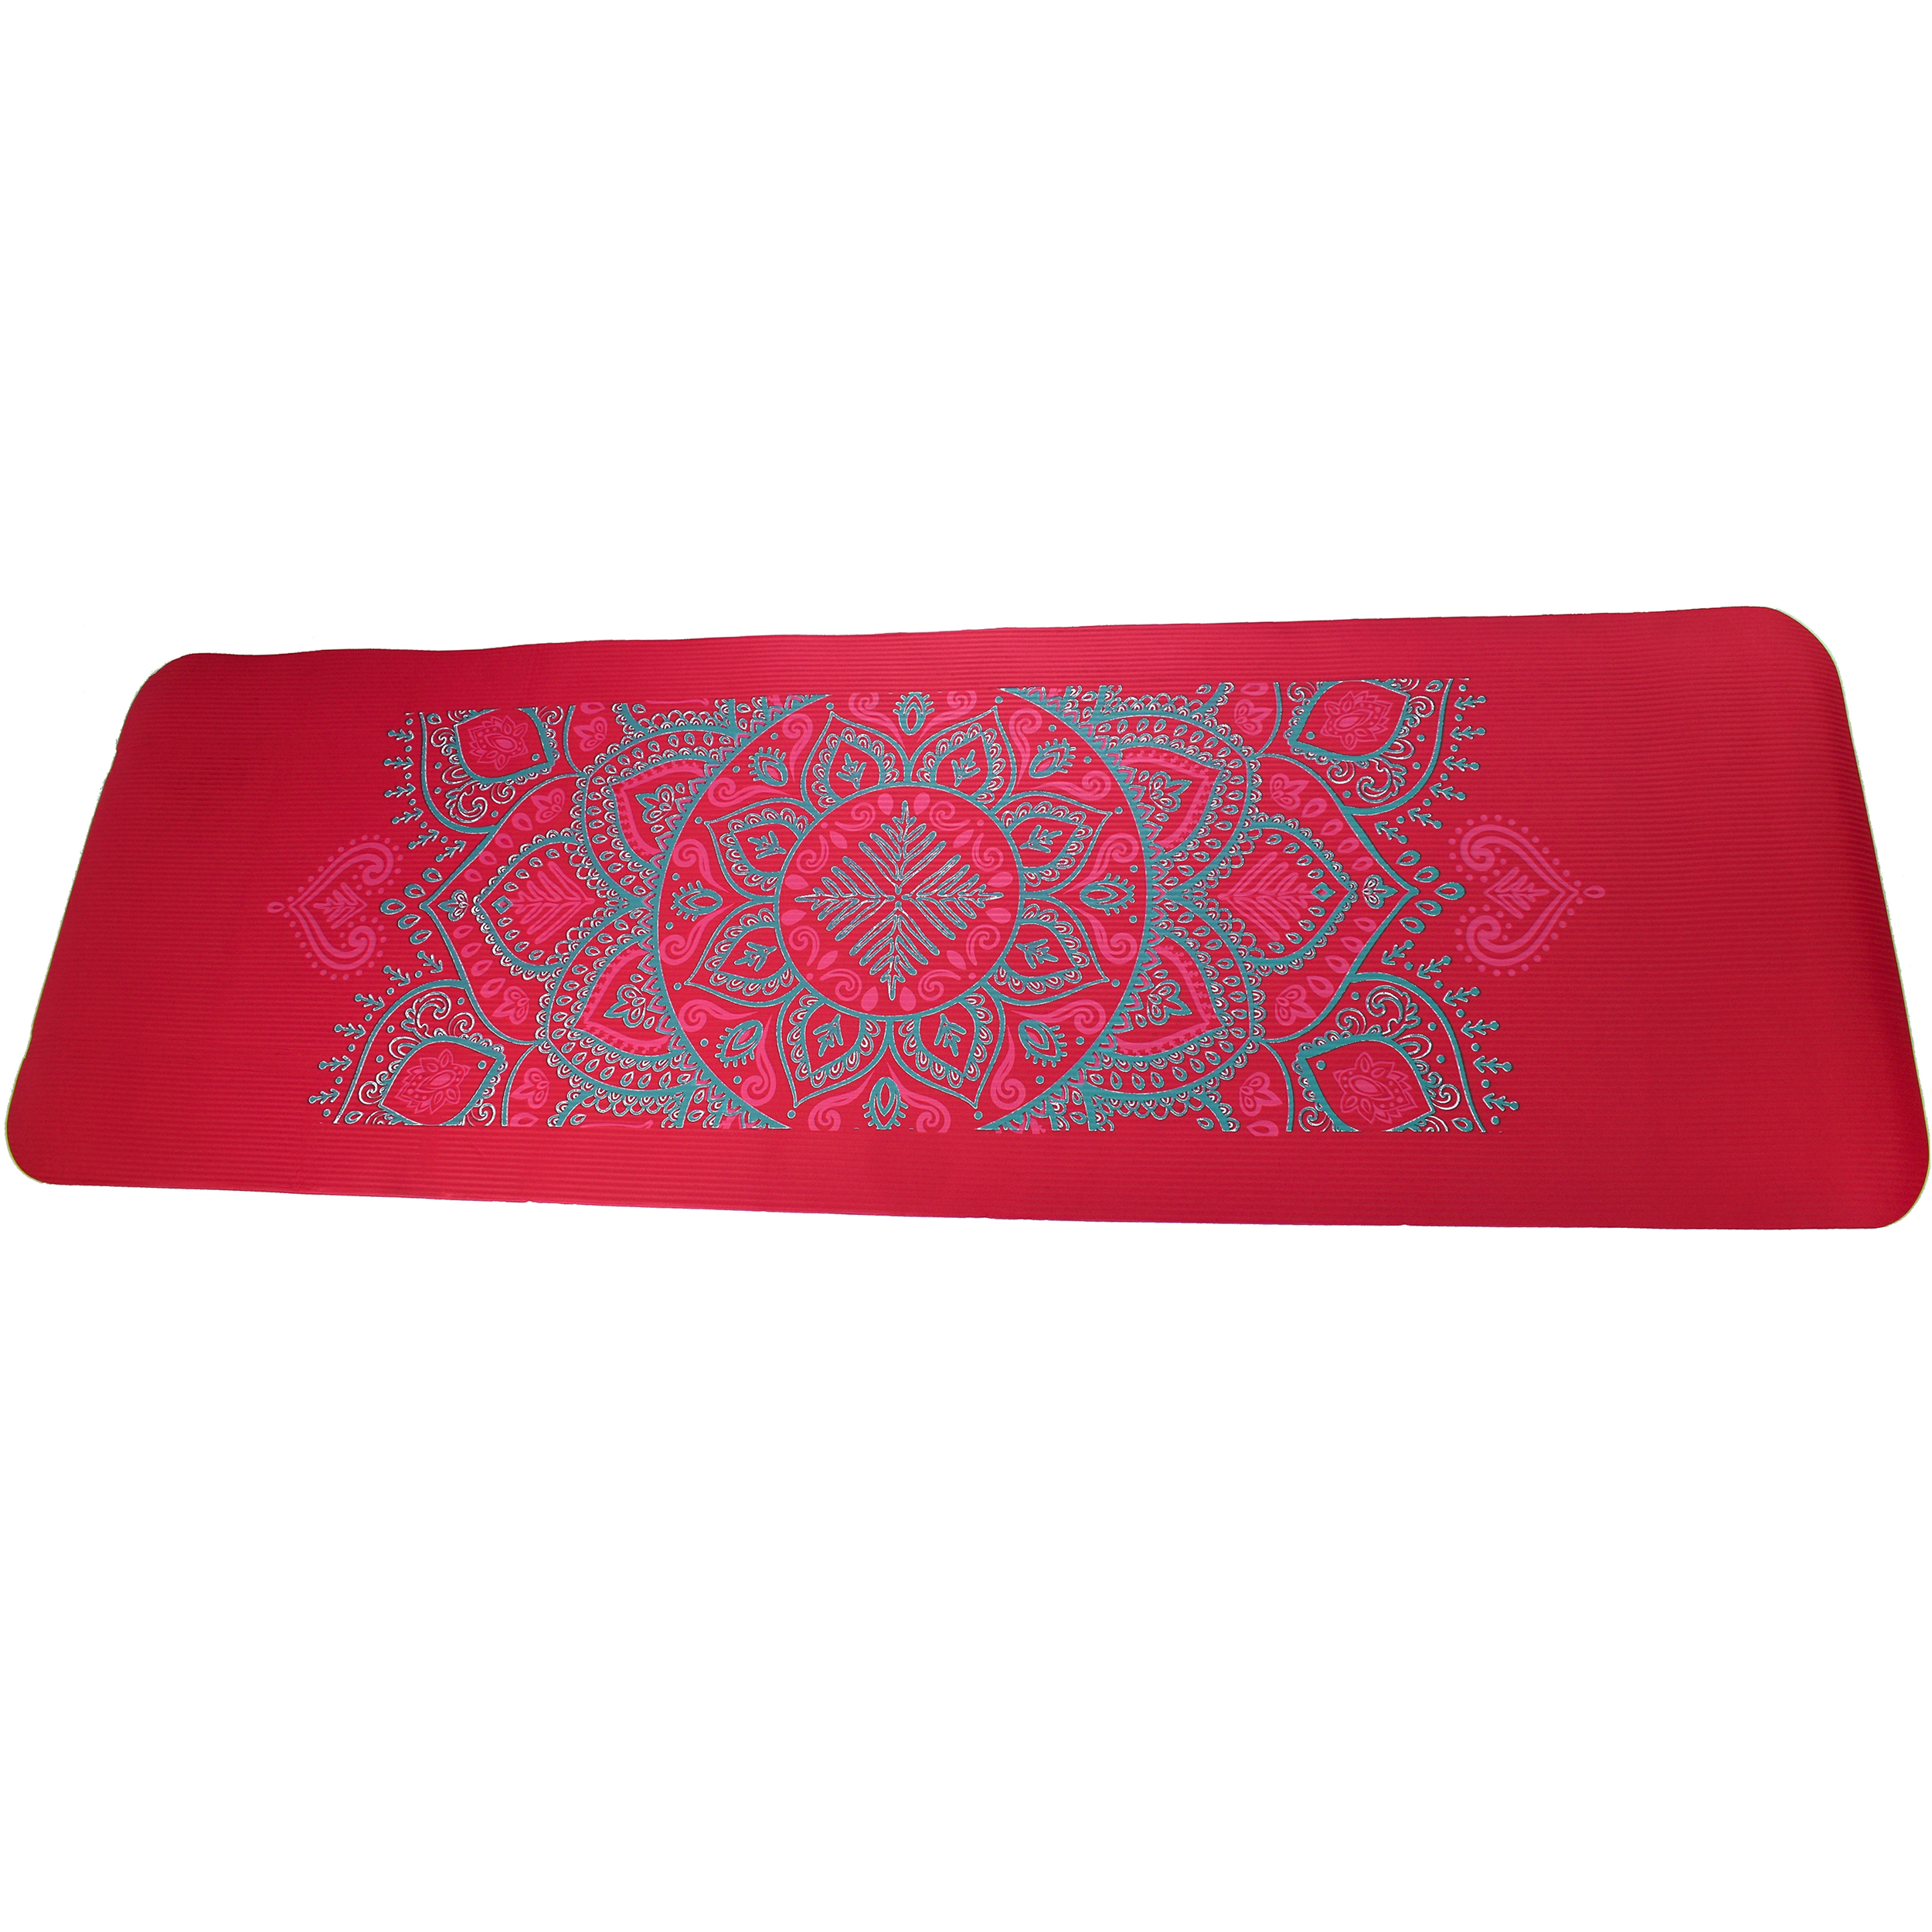 Pink NBR Mandala 12mm Thick Exercise Fitness Gym Yoga Mat 183cm x 61cm